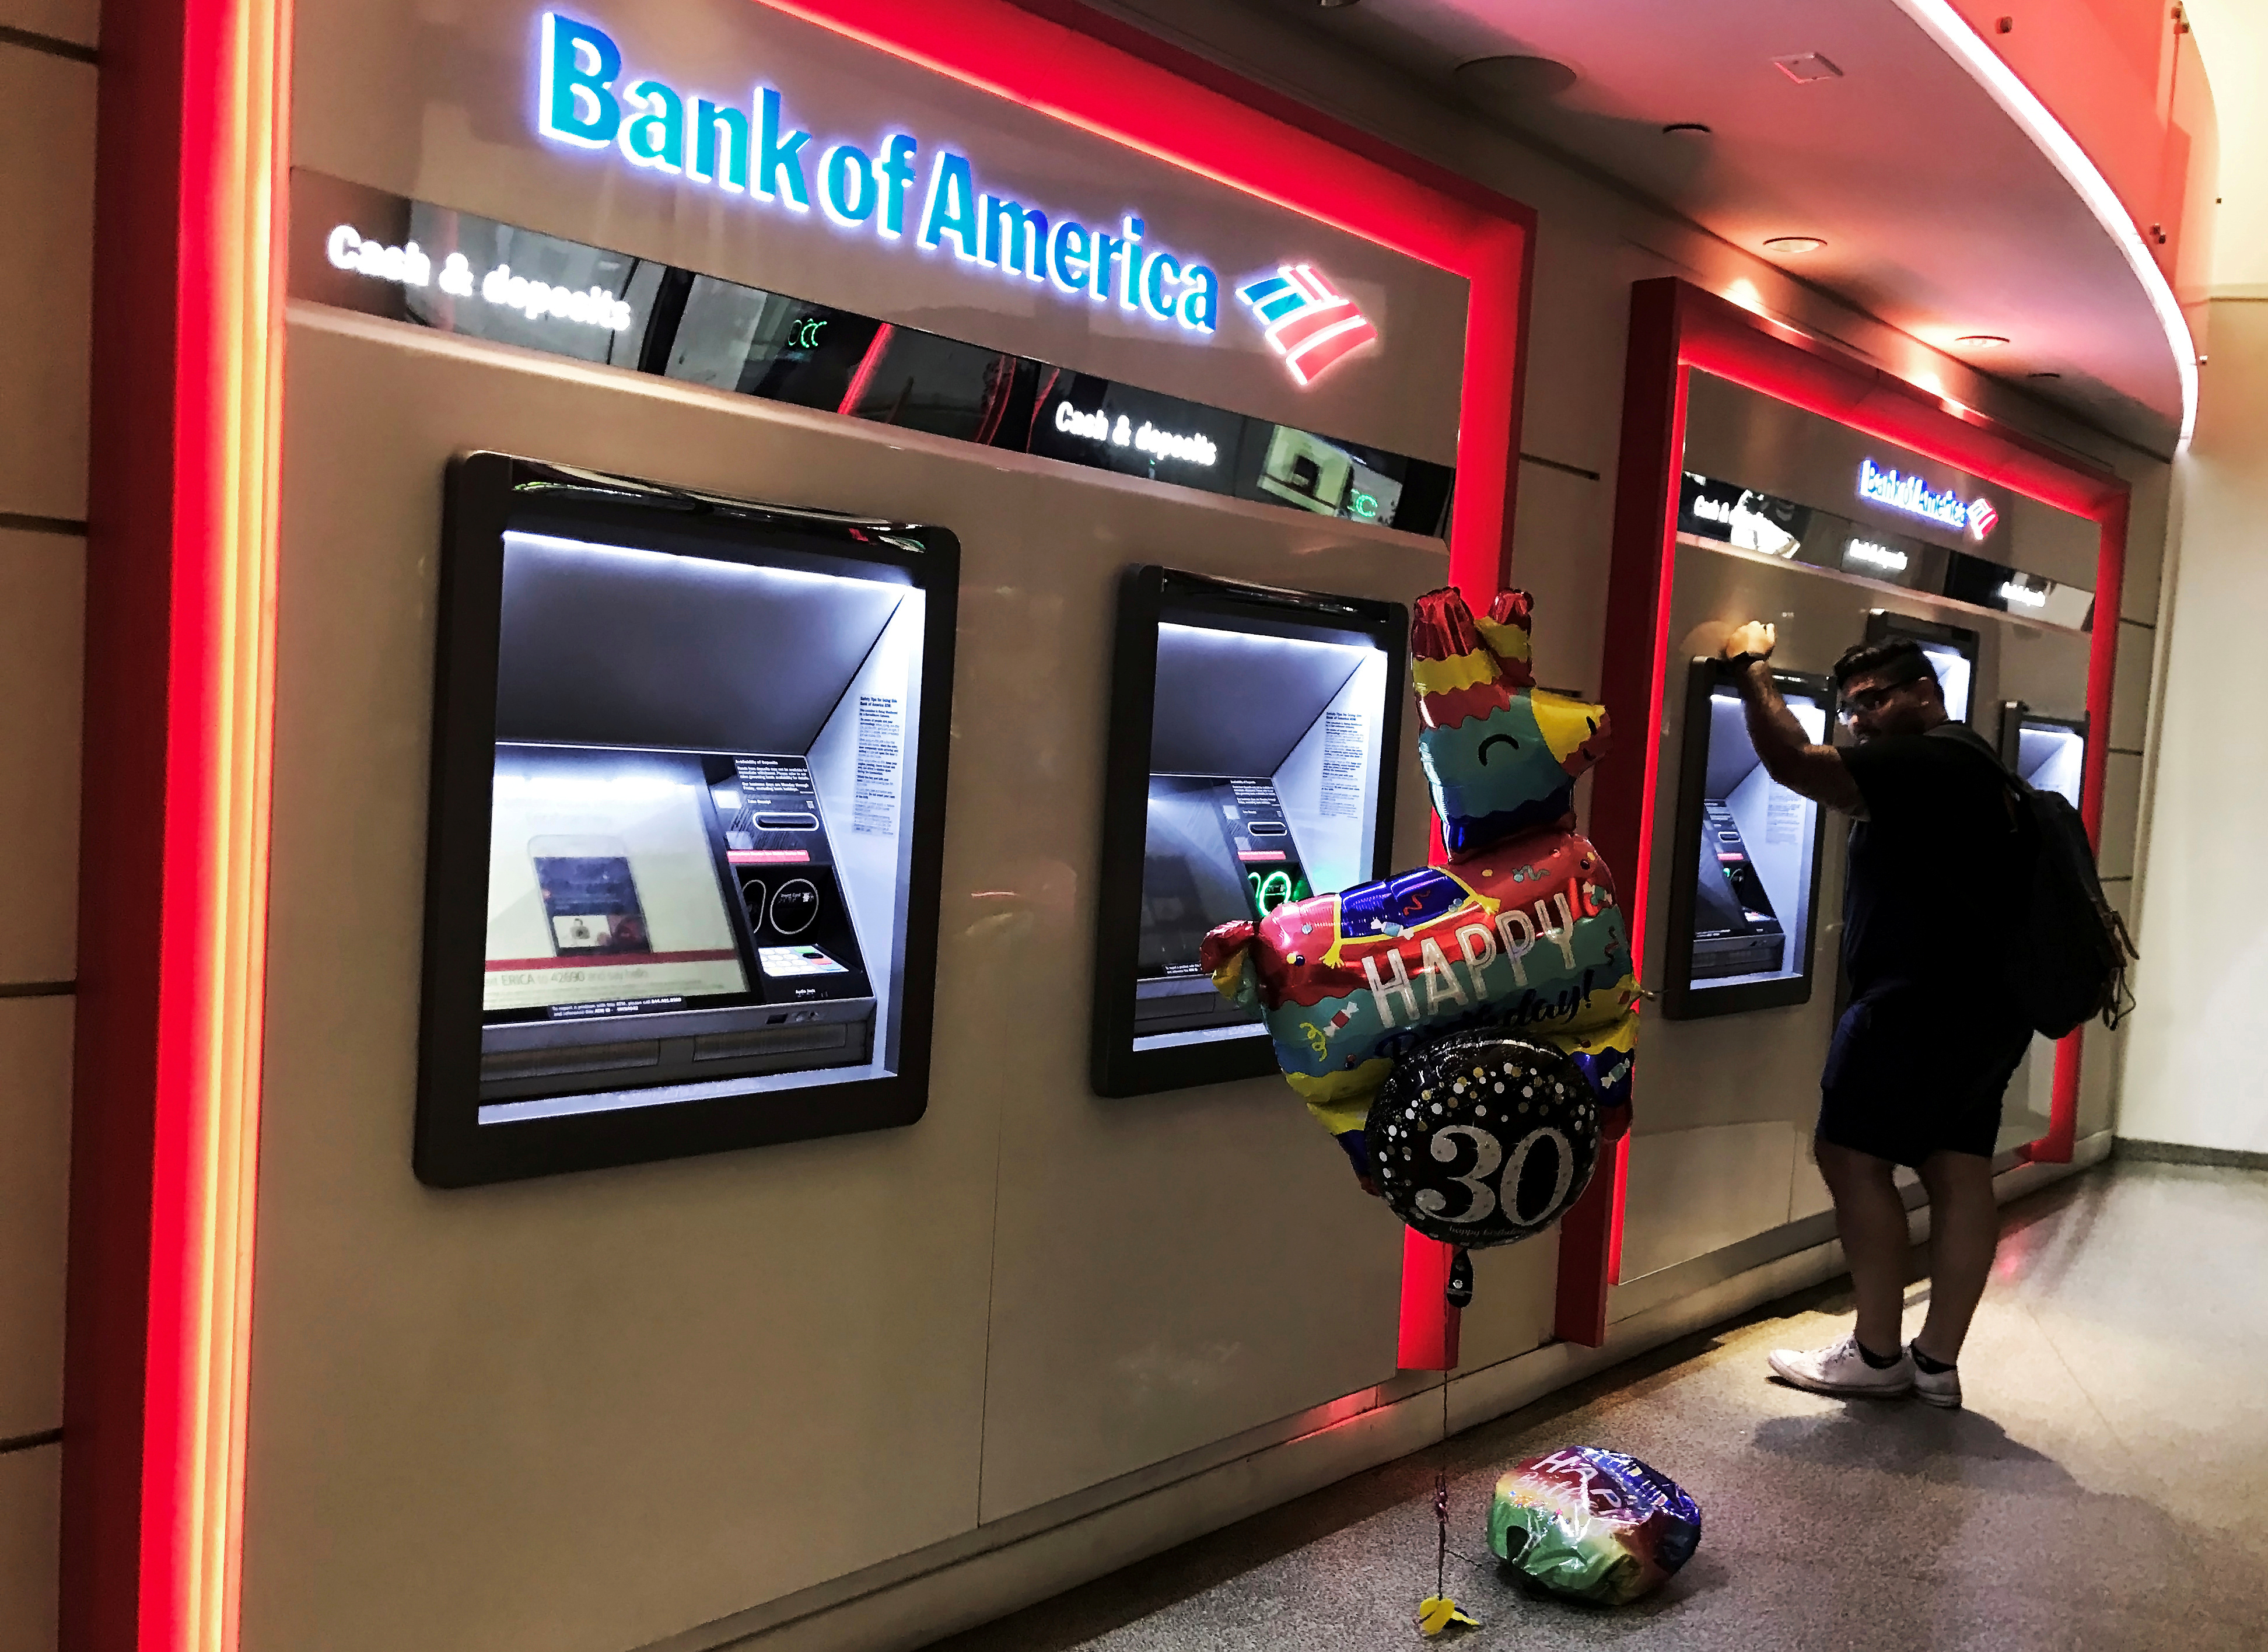 A man uses an ATM machine next an inflatable plastic balloon inside a Bank of America branch in Times Square in New York, U.S., August 10, 2019. REUTERS/Nacho Doce/File Photo